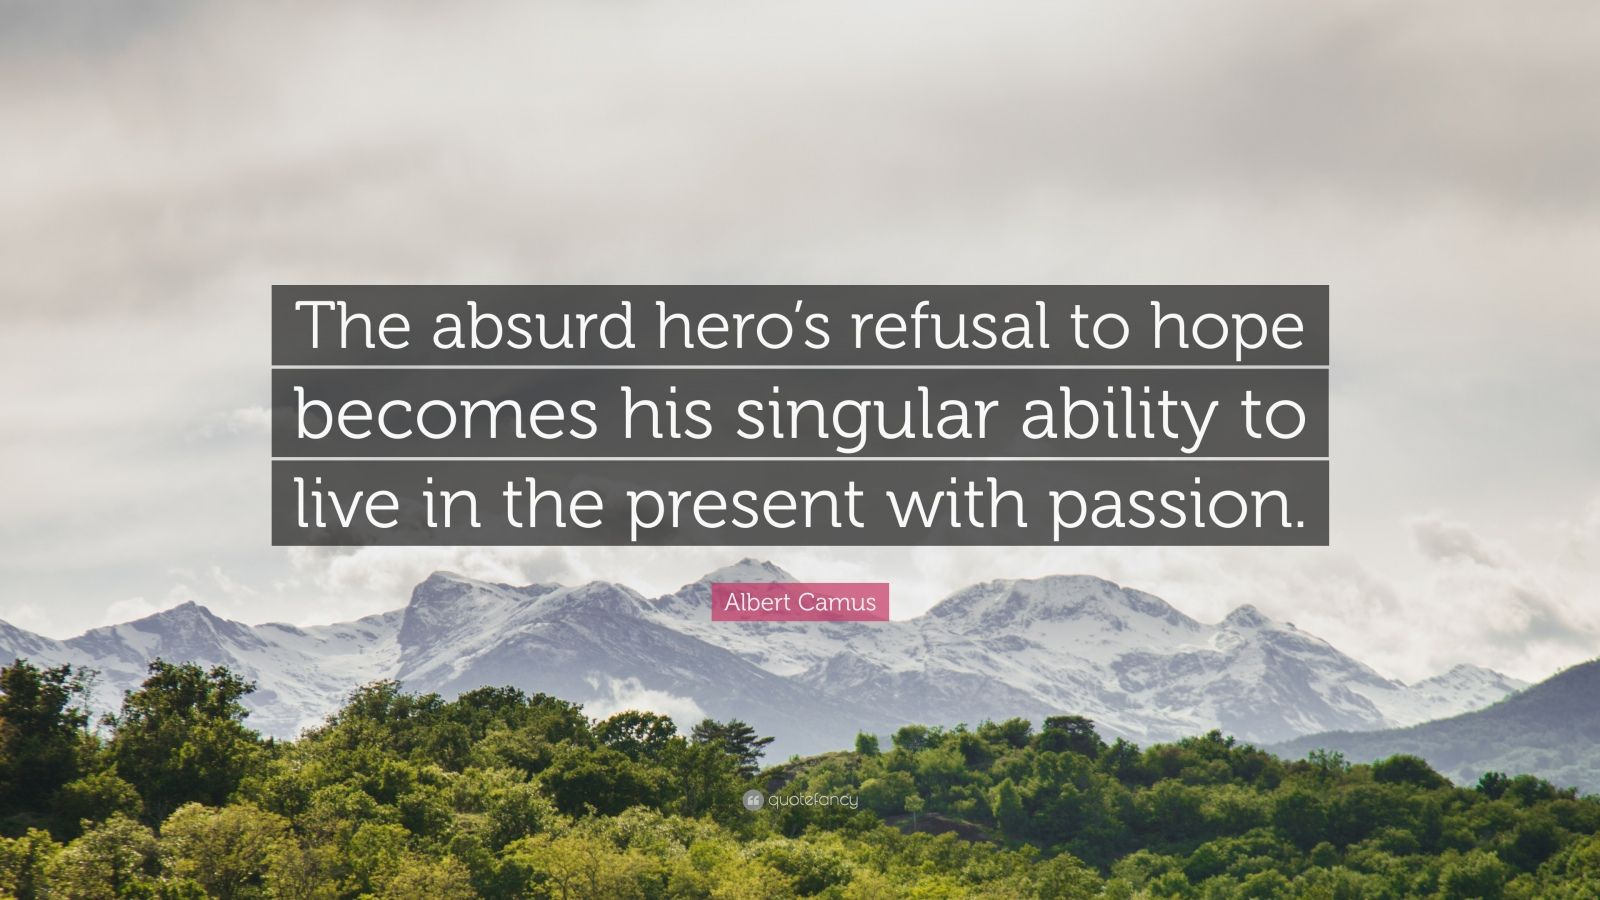 """Albert Camus Quote: """"The absurd hero's refusal to hope becomes his singular ability to live in the present with passion."""""""